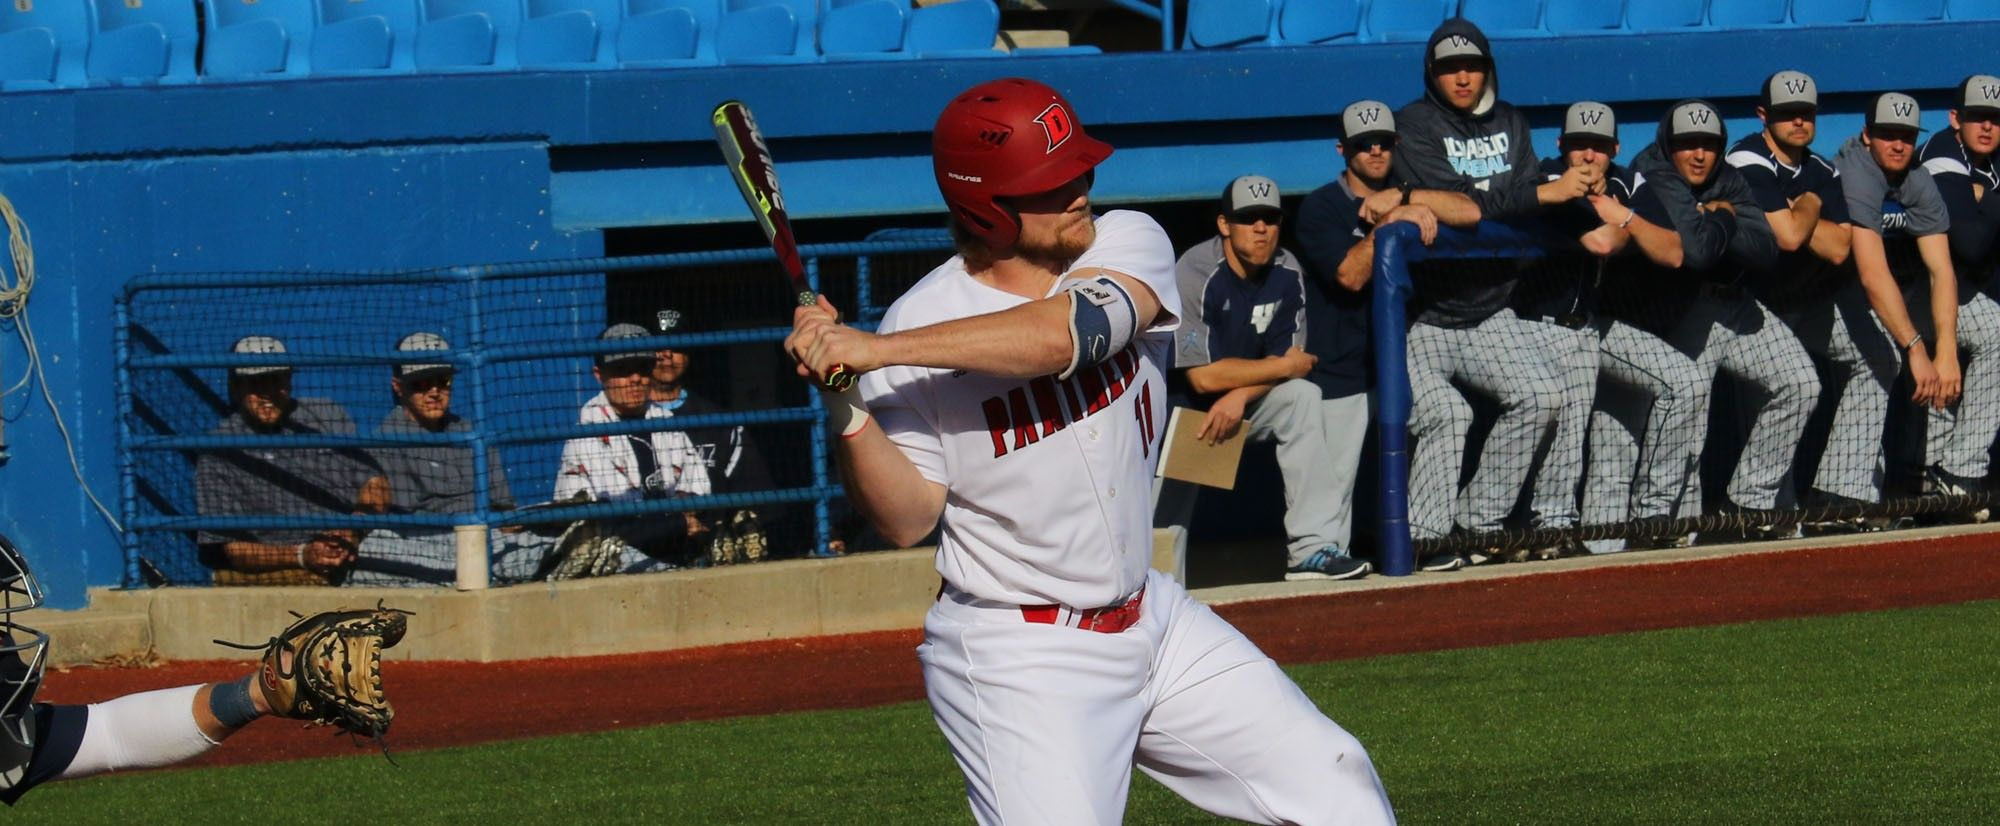 Drury Baseball Takes 3 of 4 from Missouri S&T in Opening